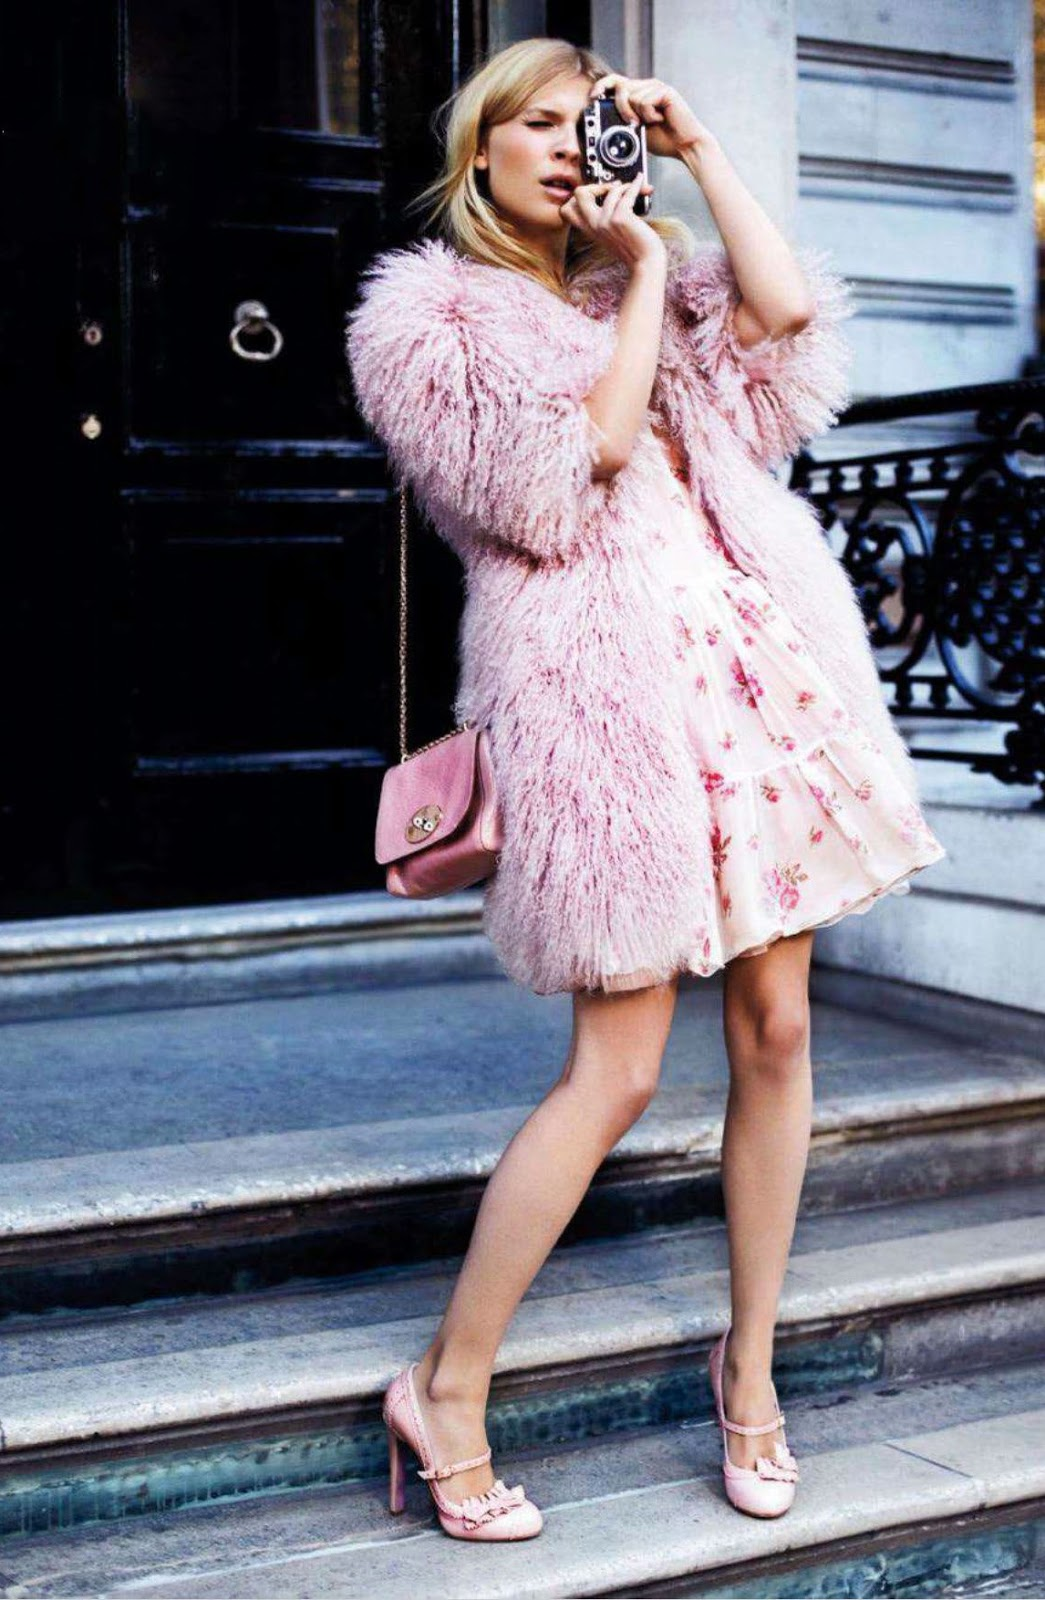 Clemence Poesy in Glamour UK February 2012 (photography: David Oldham) / via fashioned by love british fashion blog